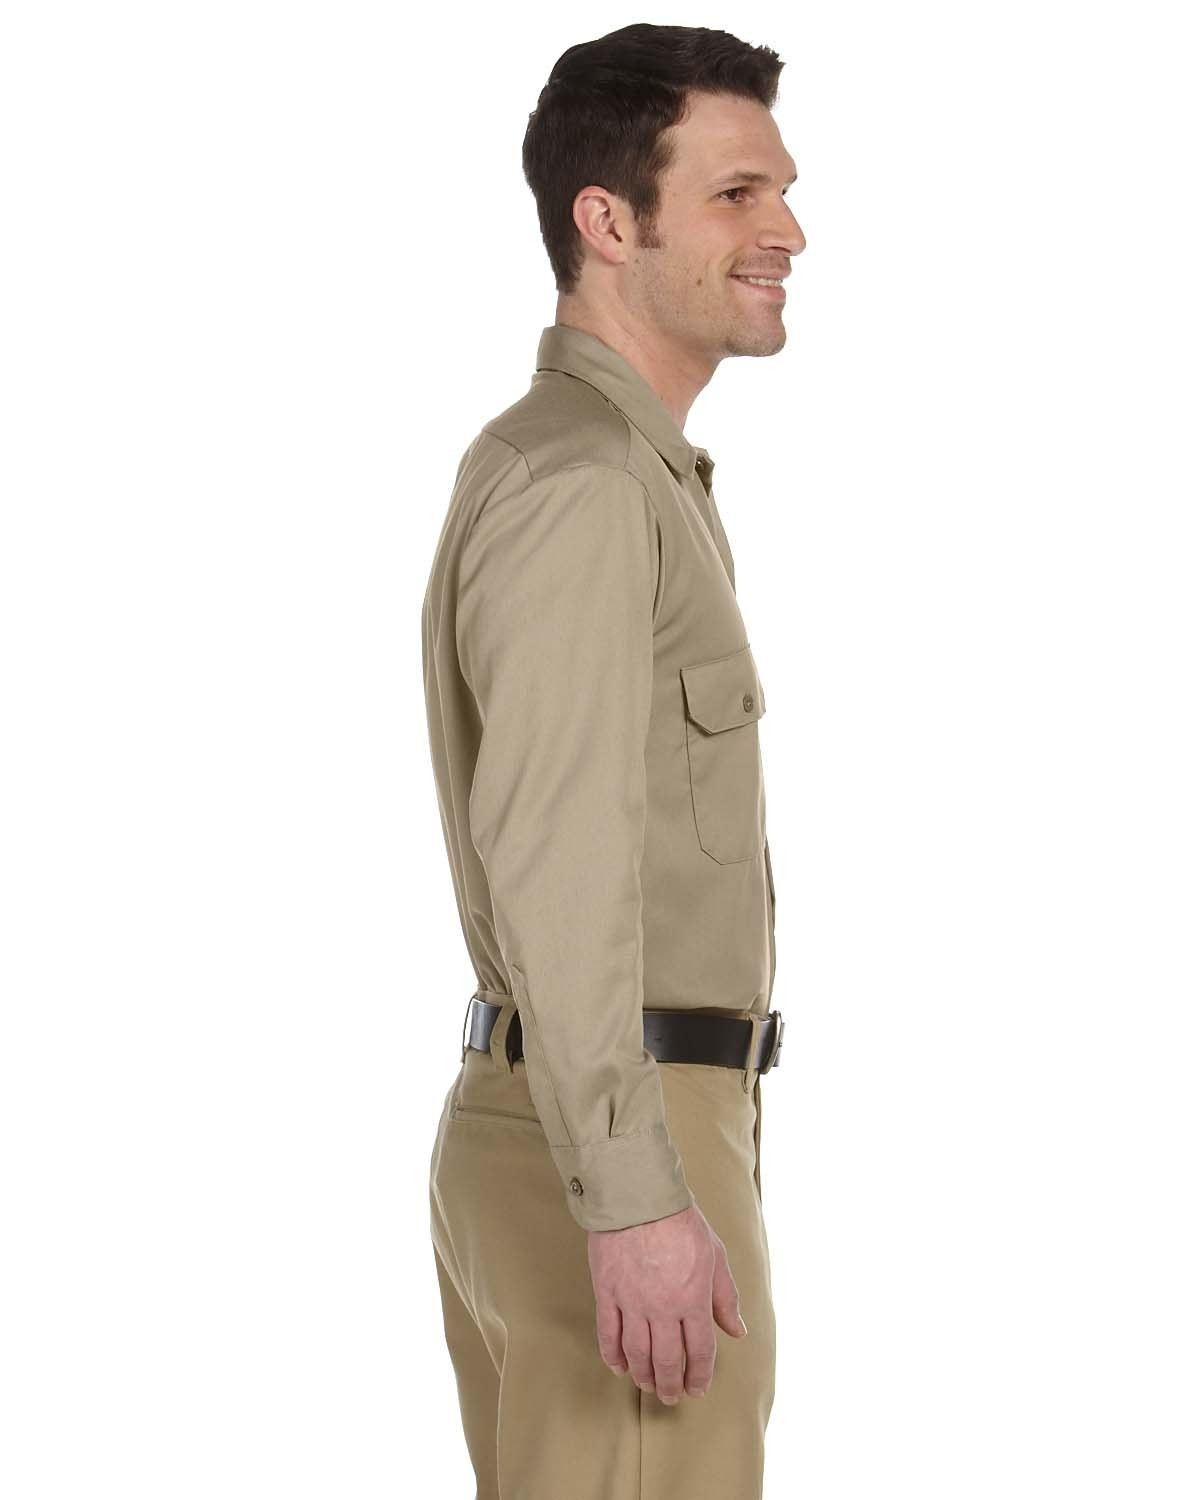 574 Dickies Drop Ship KHAKI